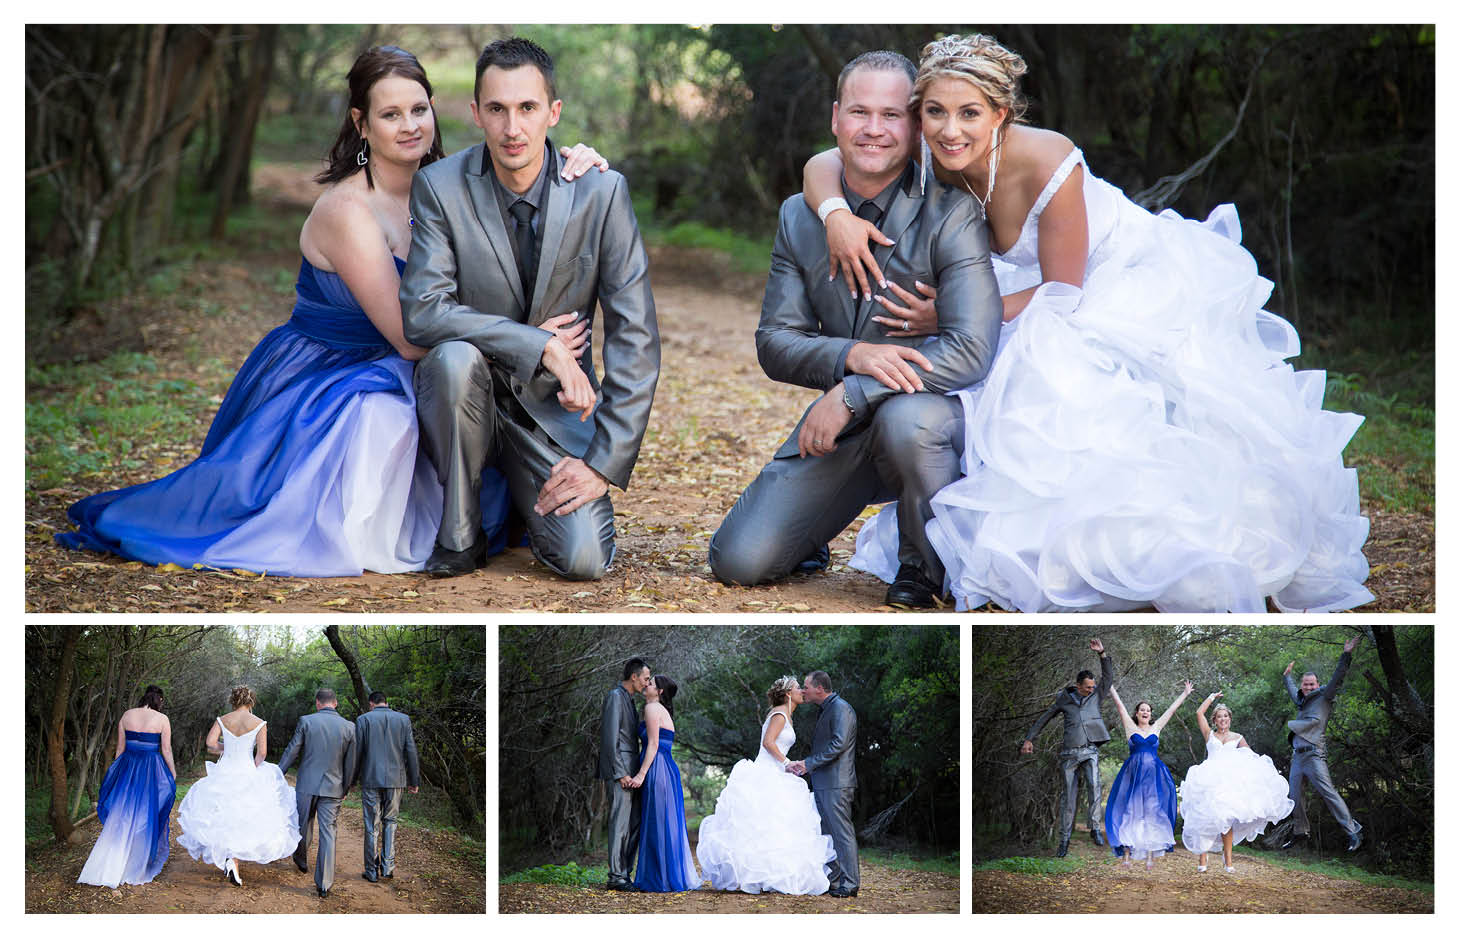 groom bride with bridesmaid and groomsmen in-front of a tree tunnel